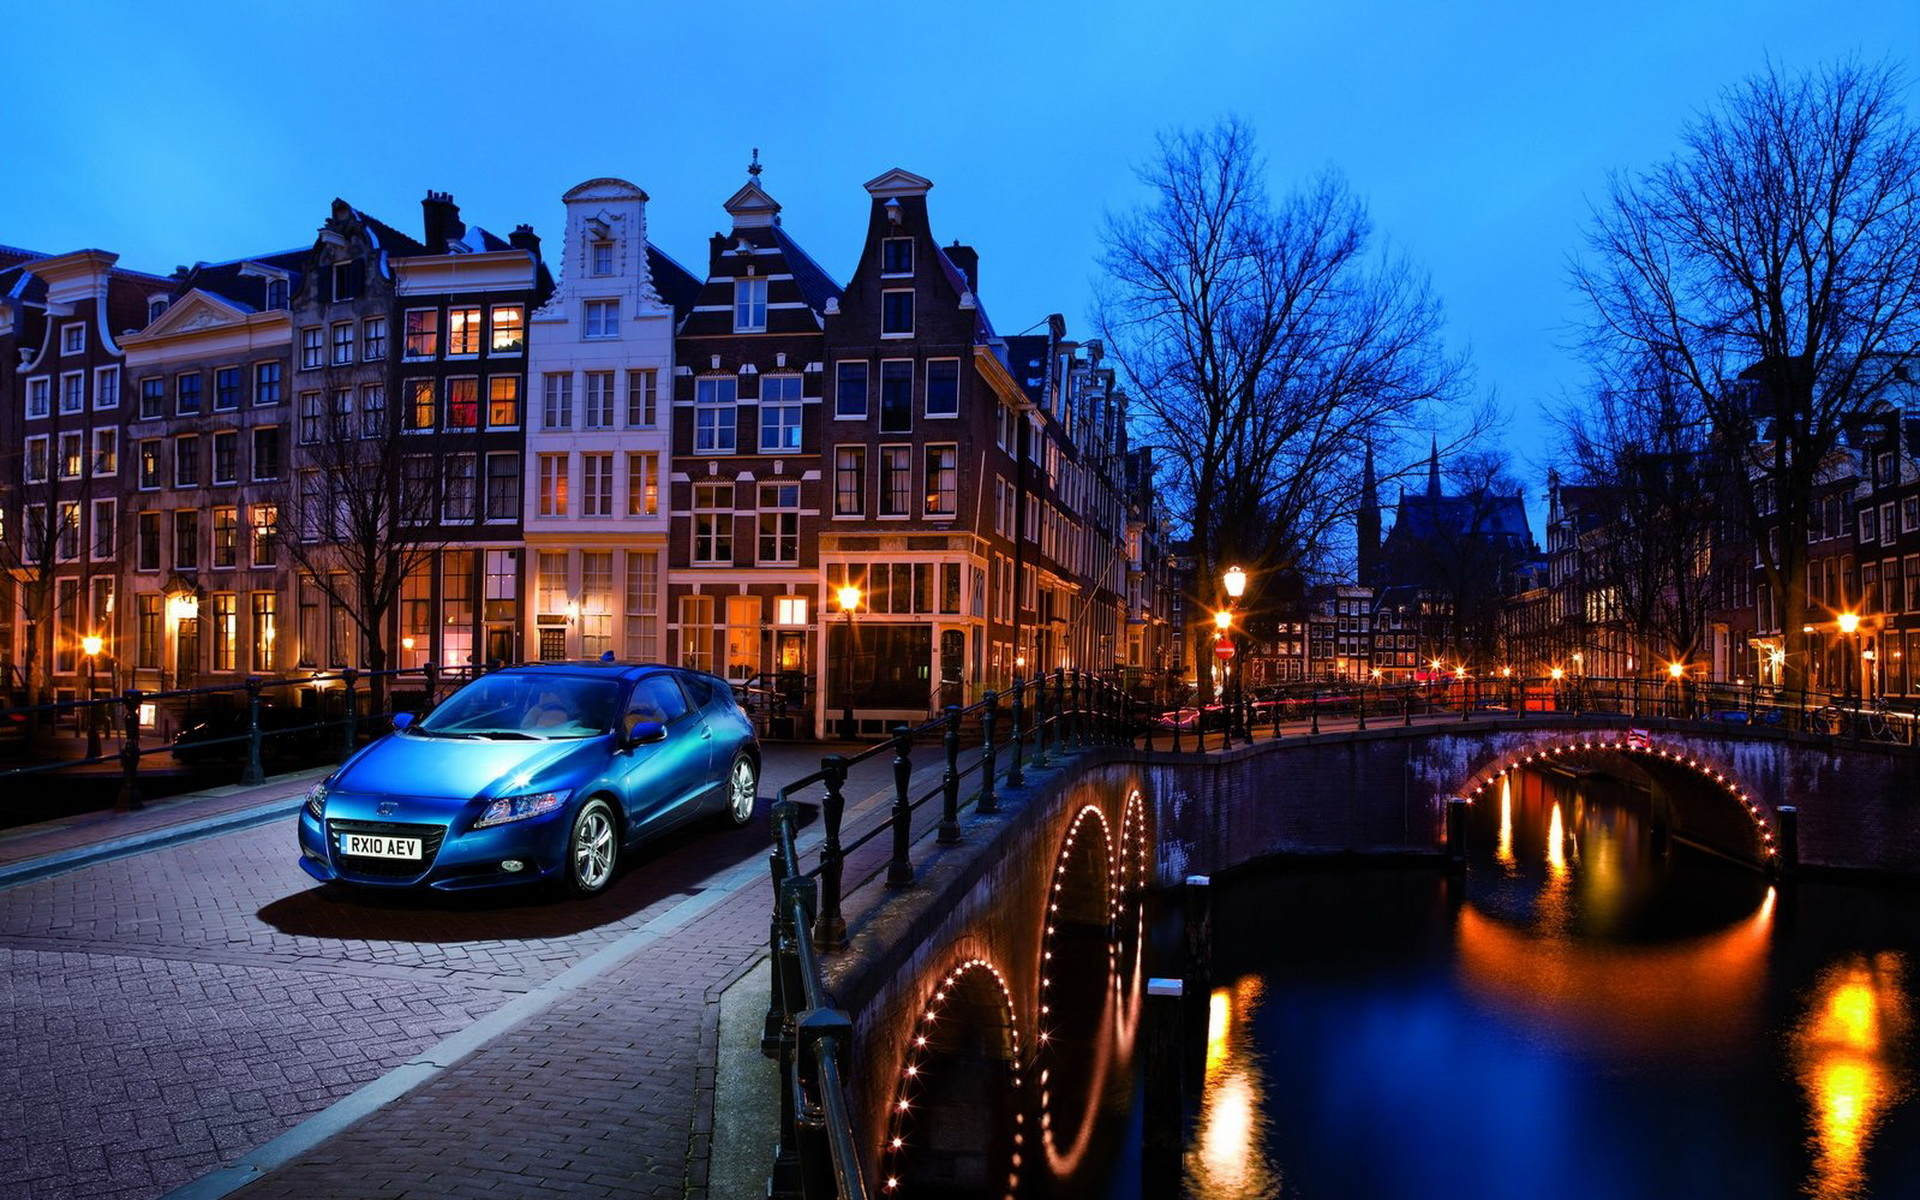 Amsterdam Fall Wallpaper Honda Cr Z In An Evening City Wallpapers And Images